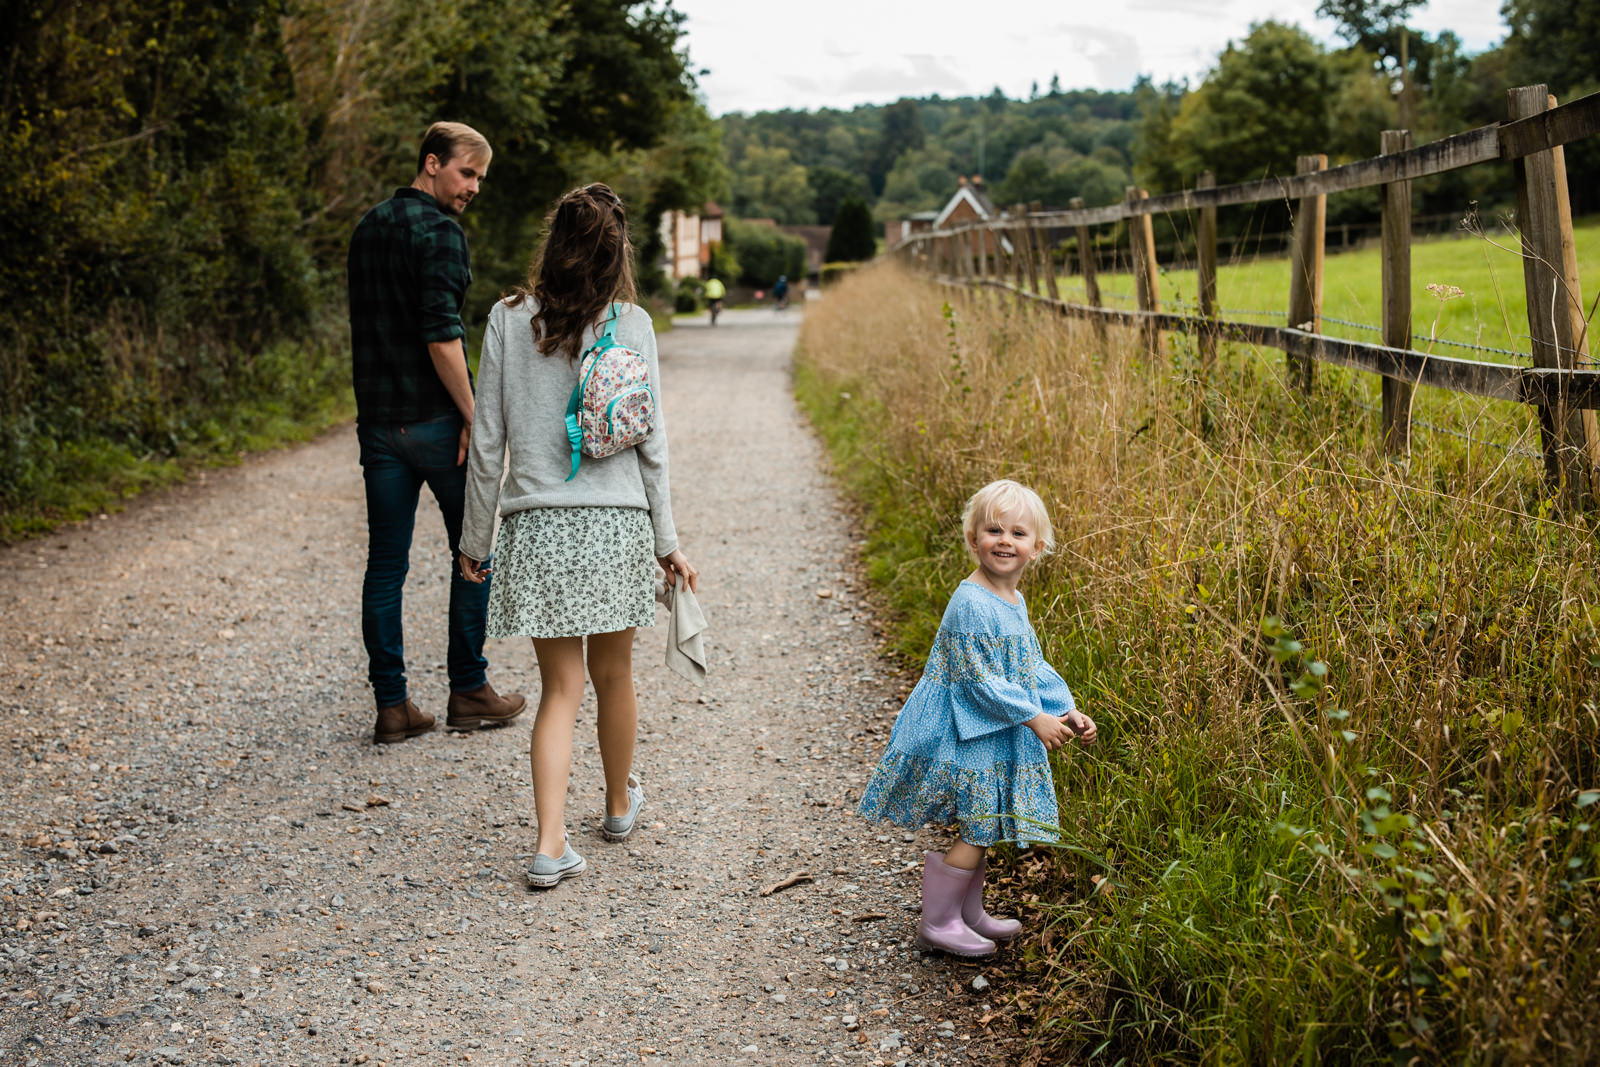 Farnham_Family_Photoshoot